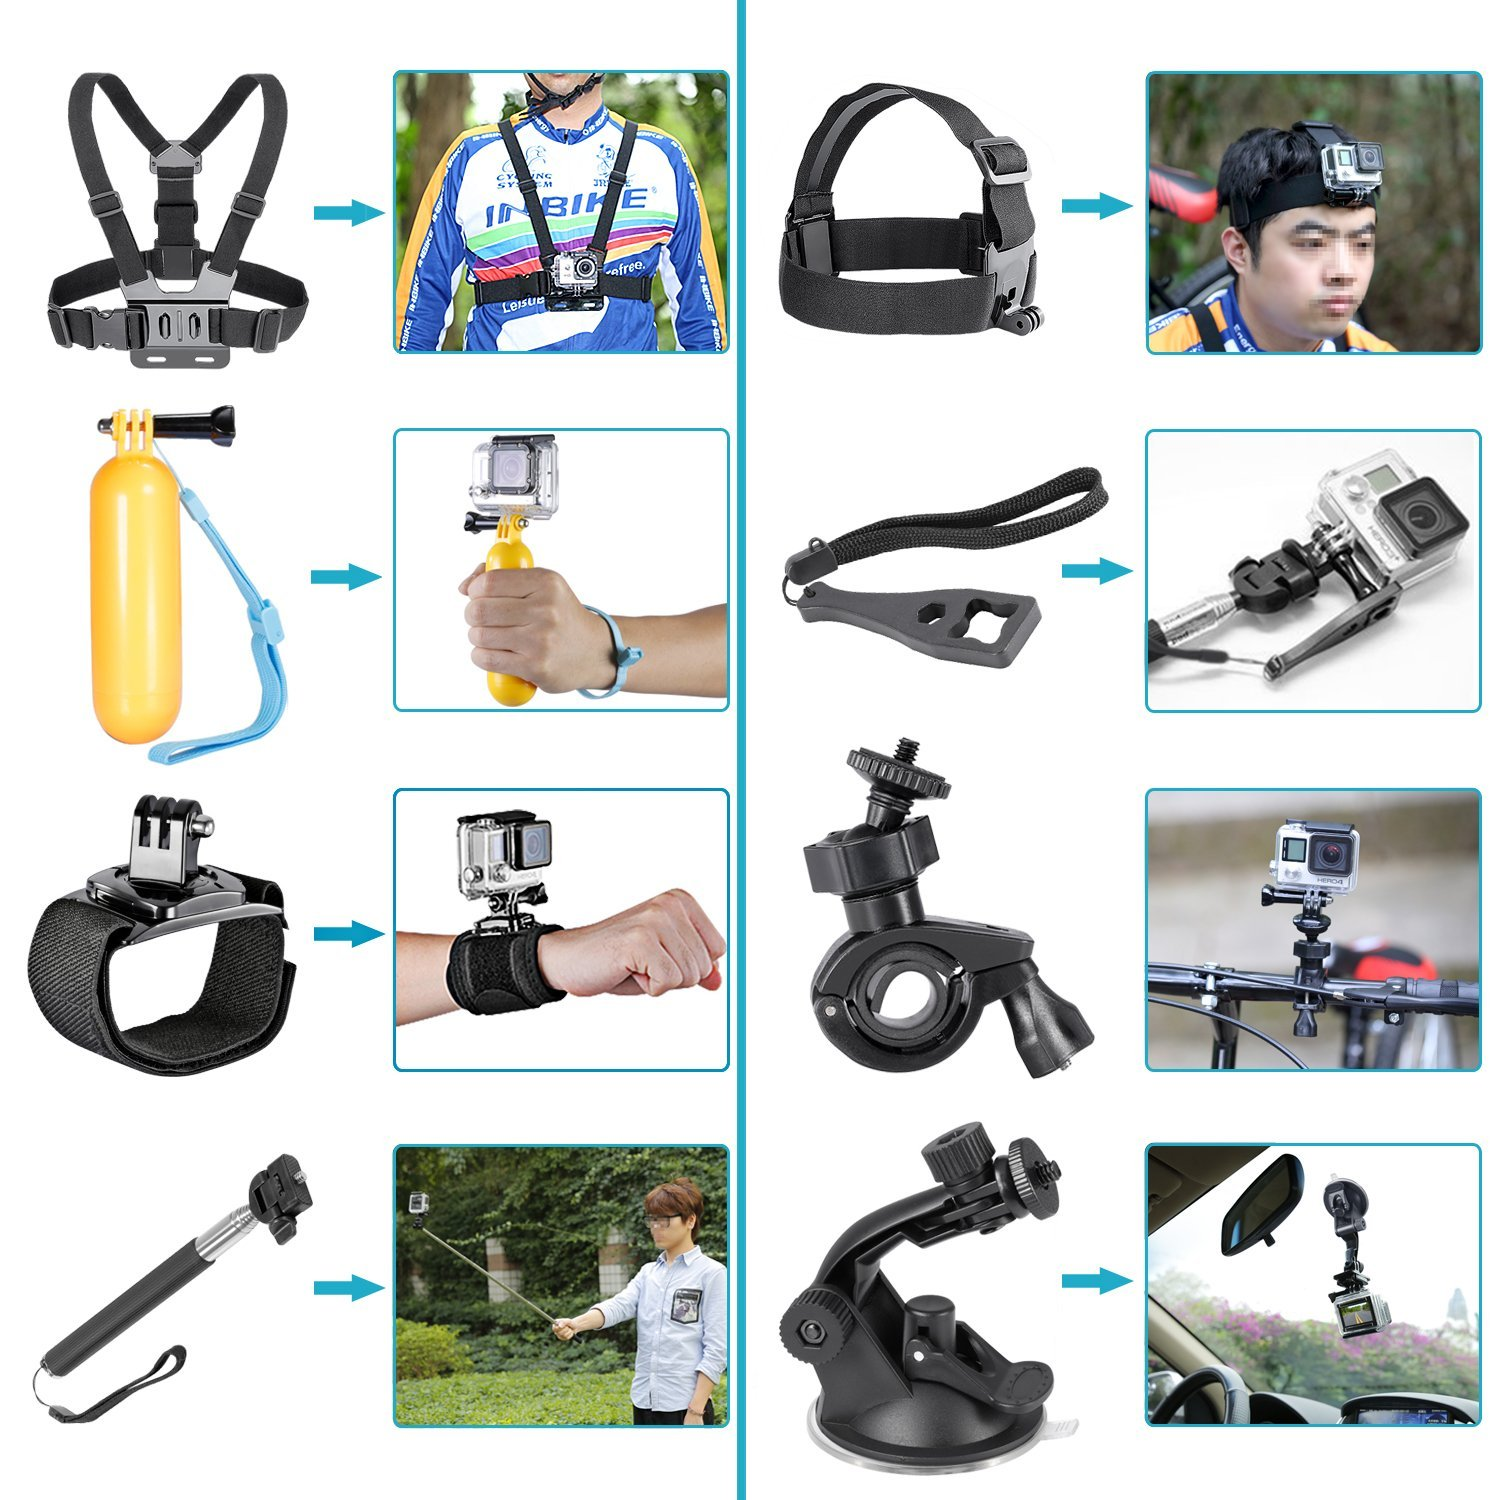 ETC-16-In-1 Sport Accessory Kit for GoPro Hero4 Session Hero Series for Xiaomi Yi in Skiing Climbing Bike Camping Diving and etc